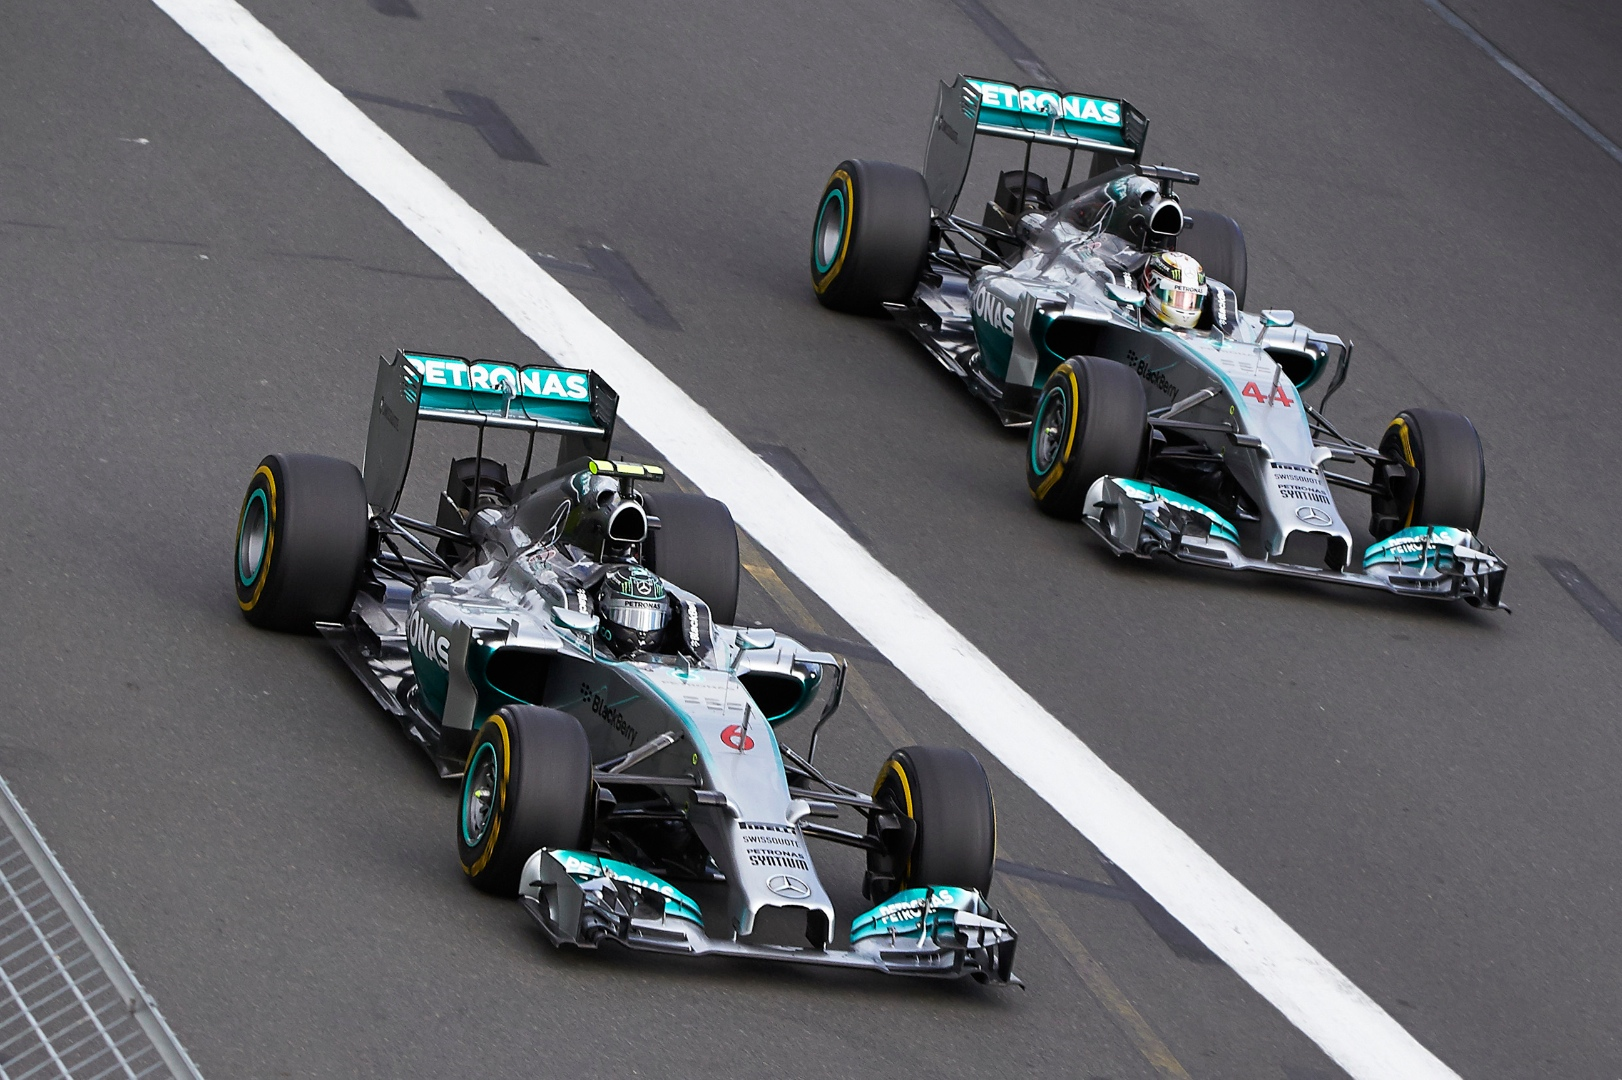 mercedes amg petronas previews the 2014 malaysian grand prix autoevolution. Black Bedroom Furniture Sets. Home Design Ideas